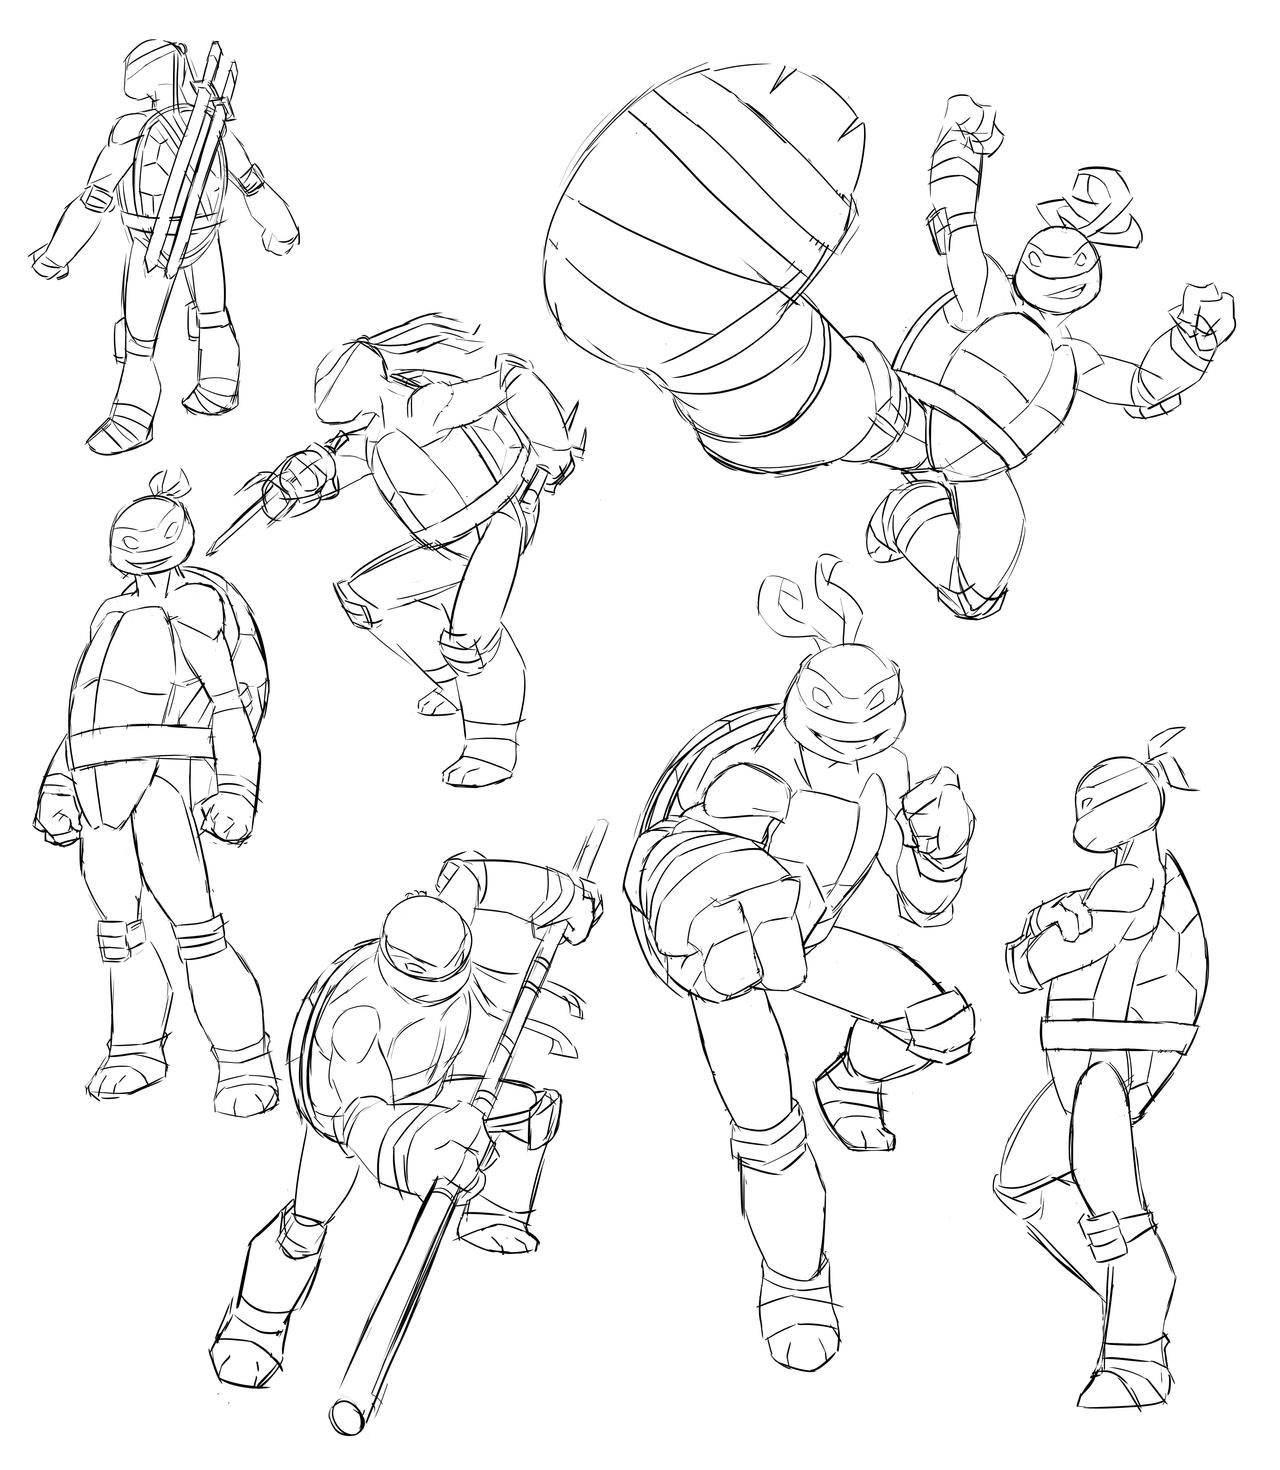 tmnt coloring pages ralph 2012 - photo#17